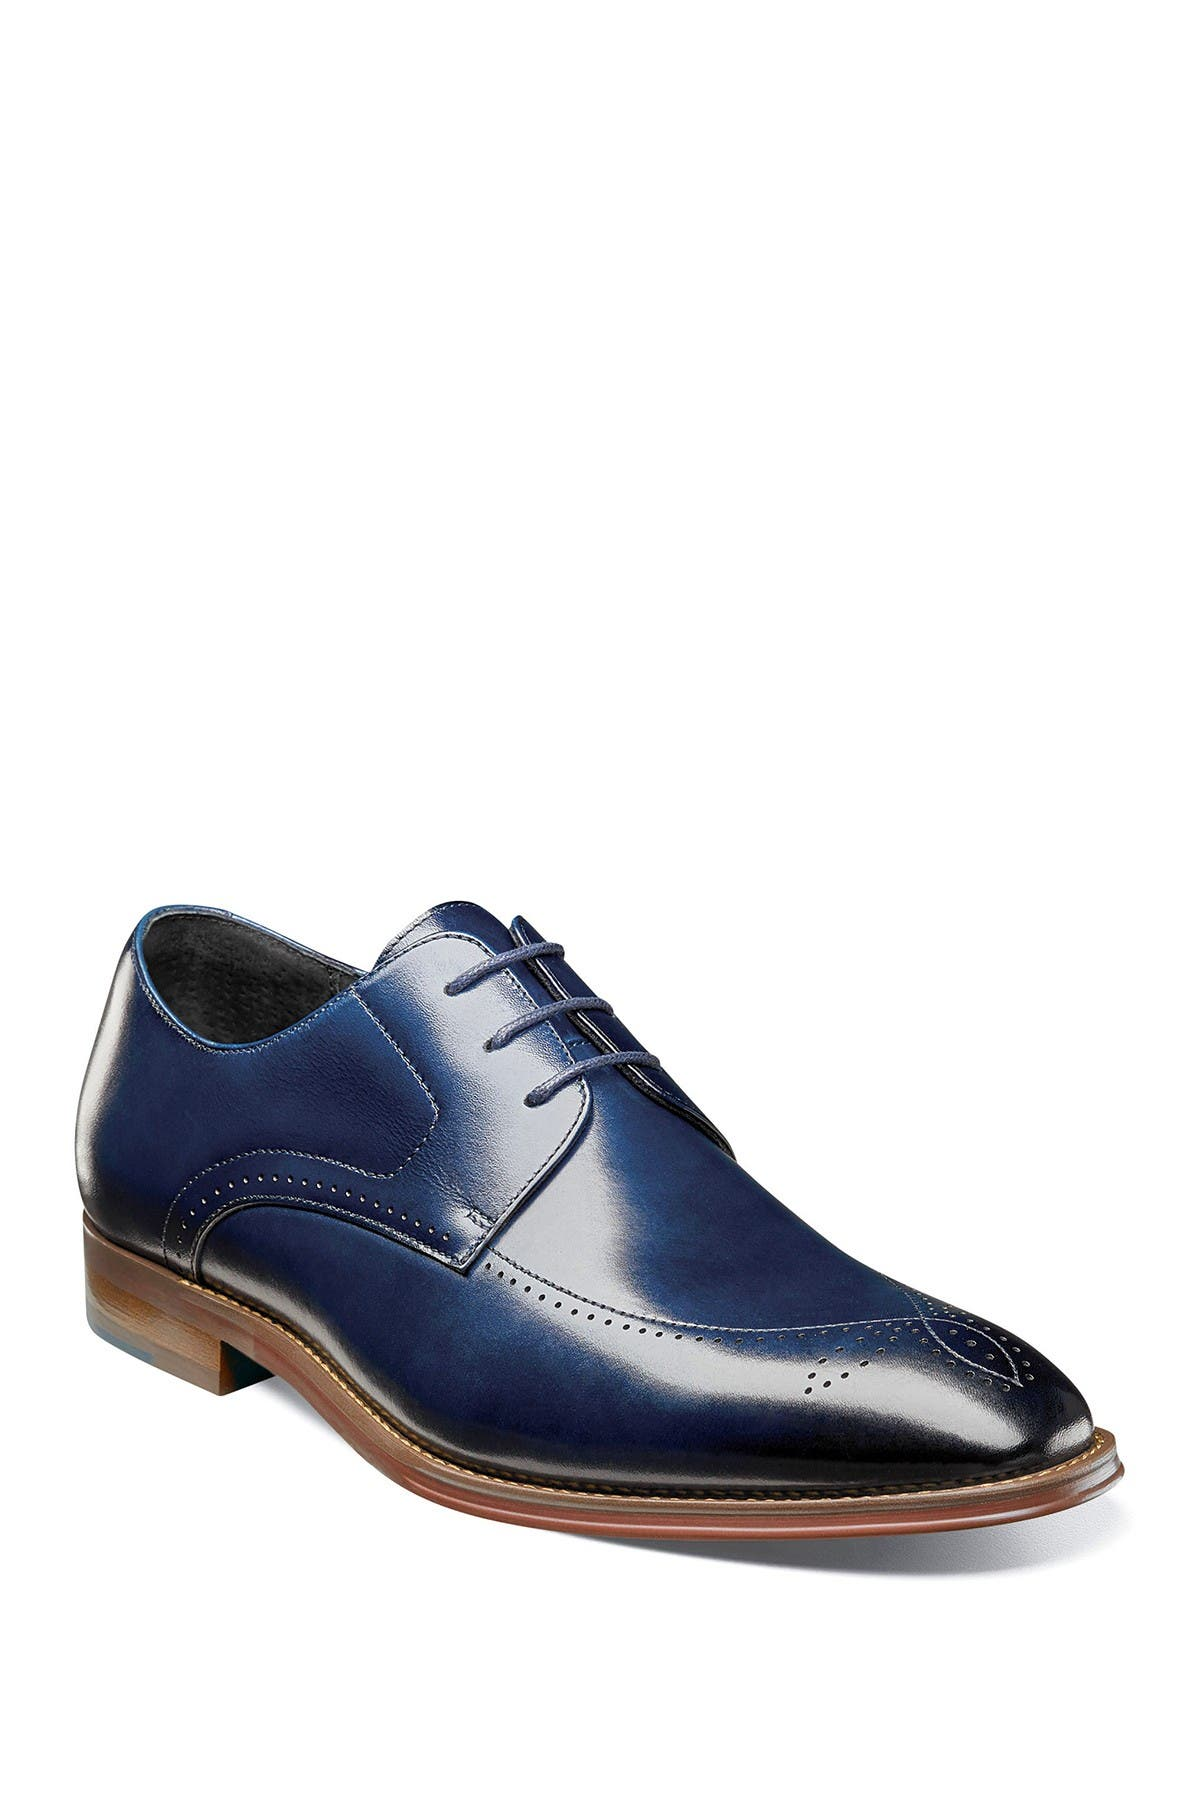 Image of Stacy Adams Ballard Perforated Oxford